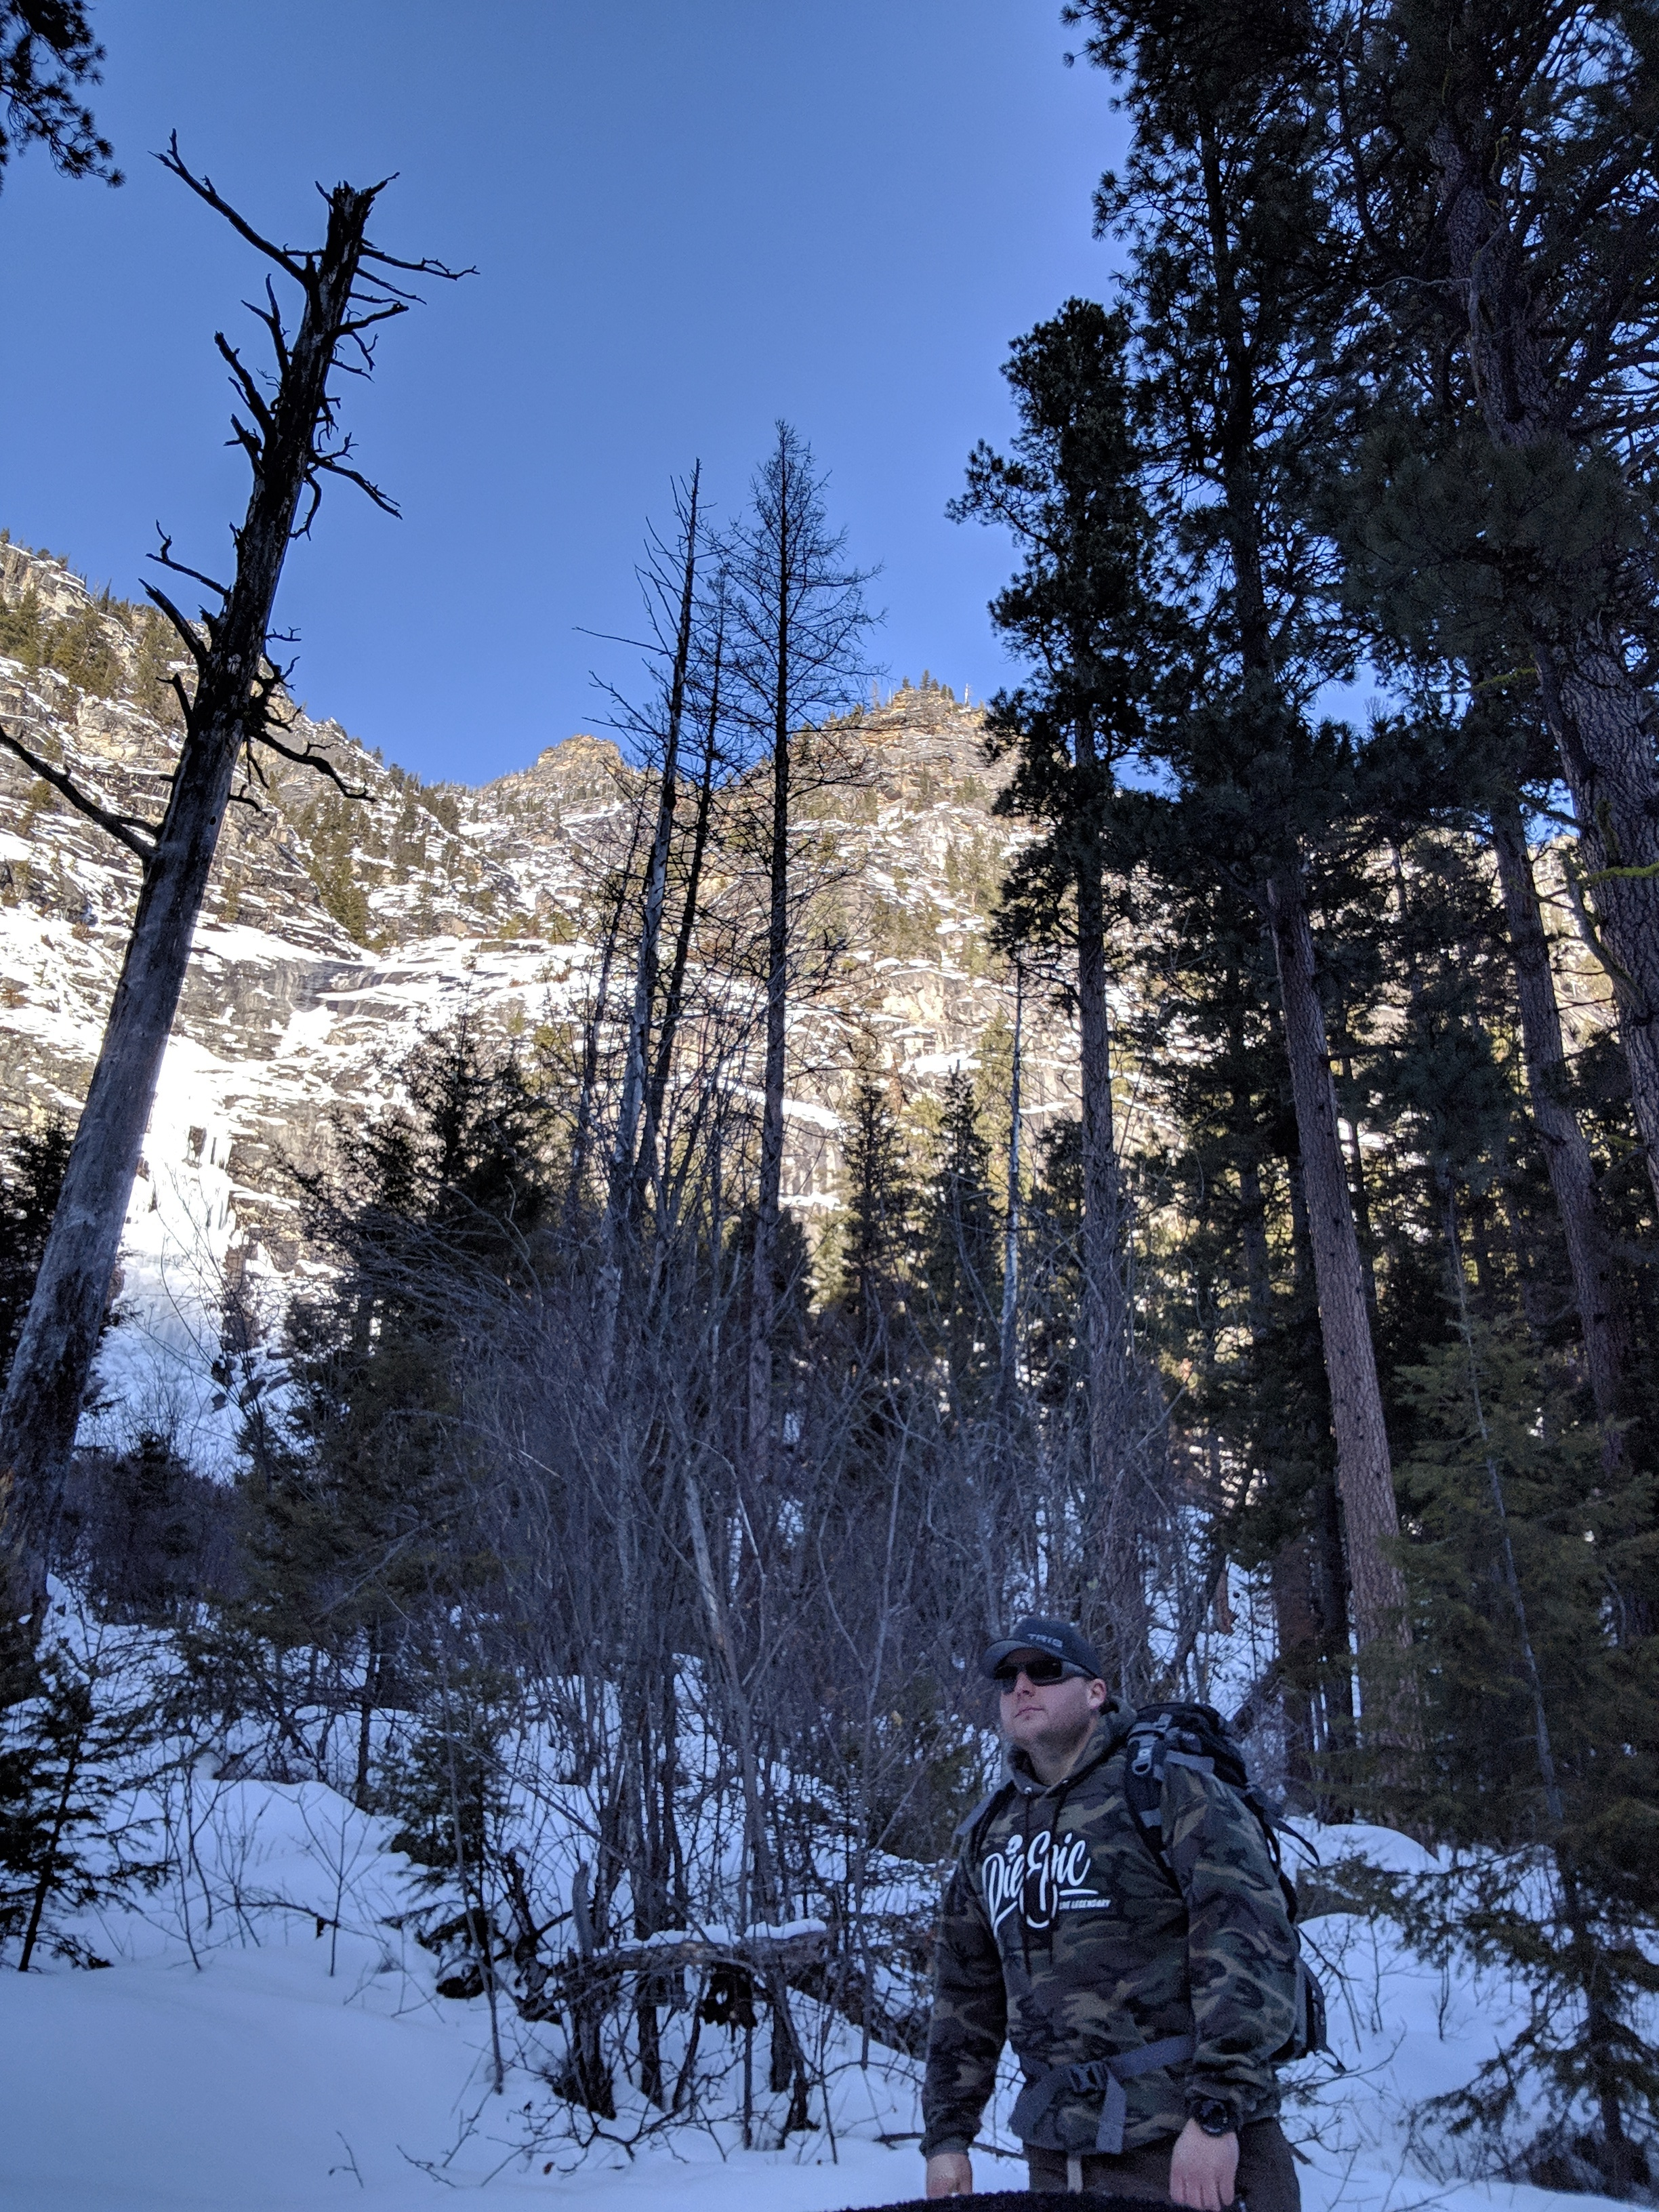 January 2019 Winner - Montana Mountains